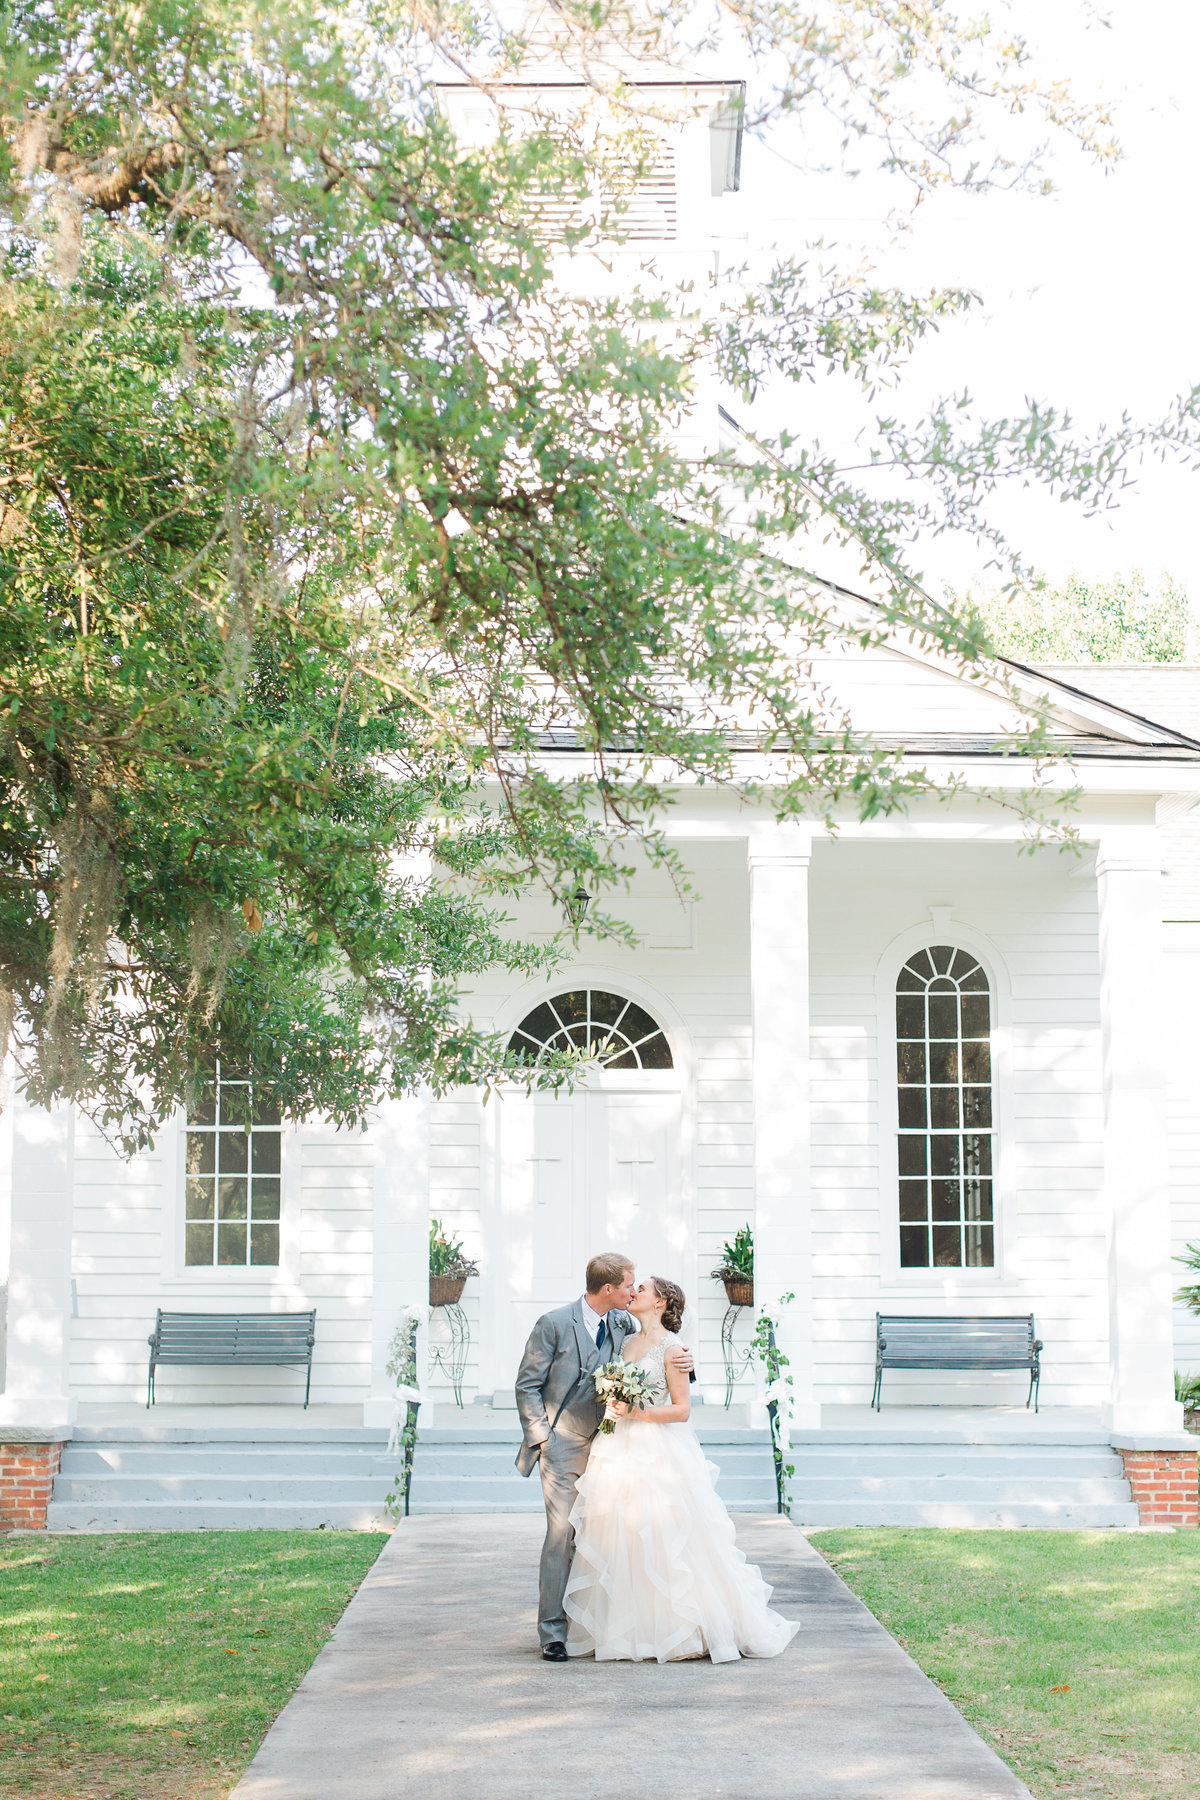 Charleston Weddings- Nancy Lempesis Photography - Wedding Phtography (1)